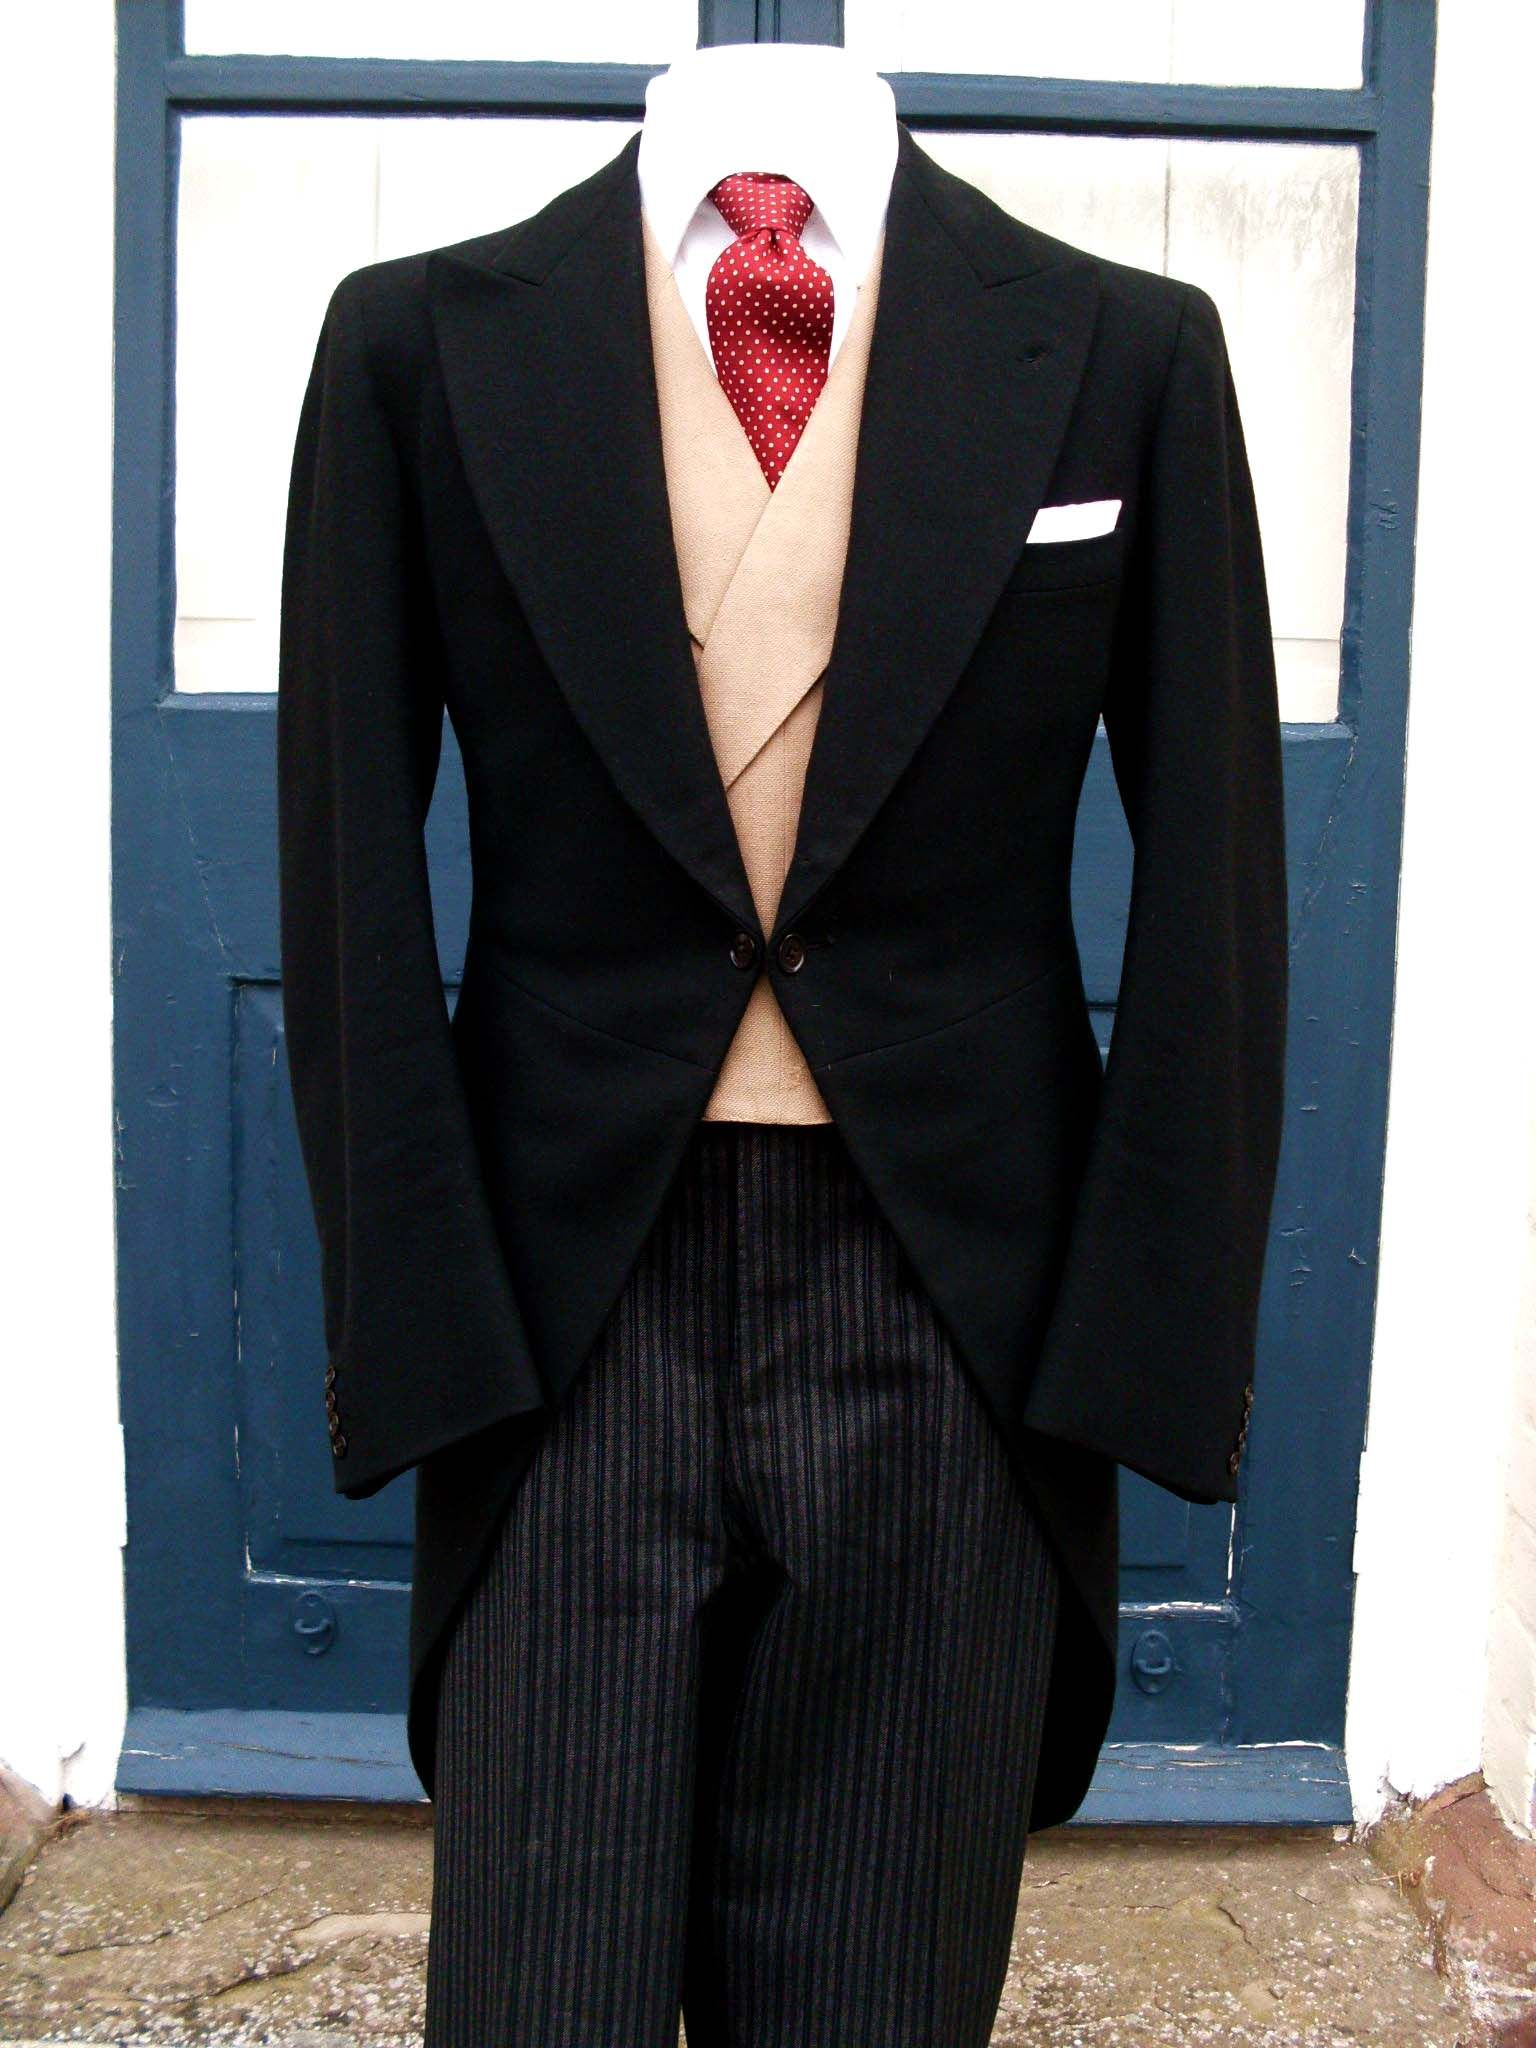 Traditional Morning Dress | Morning dress, Morning suits and ...